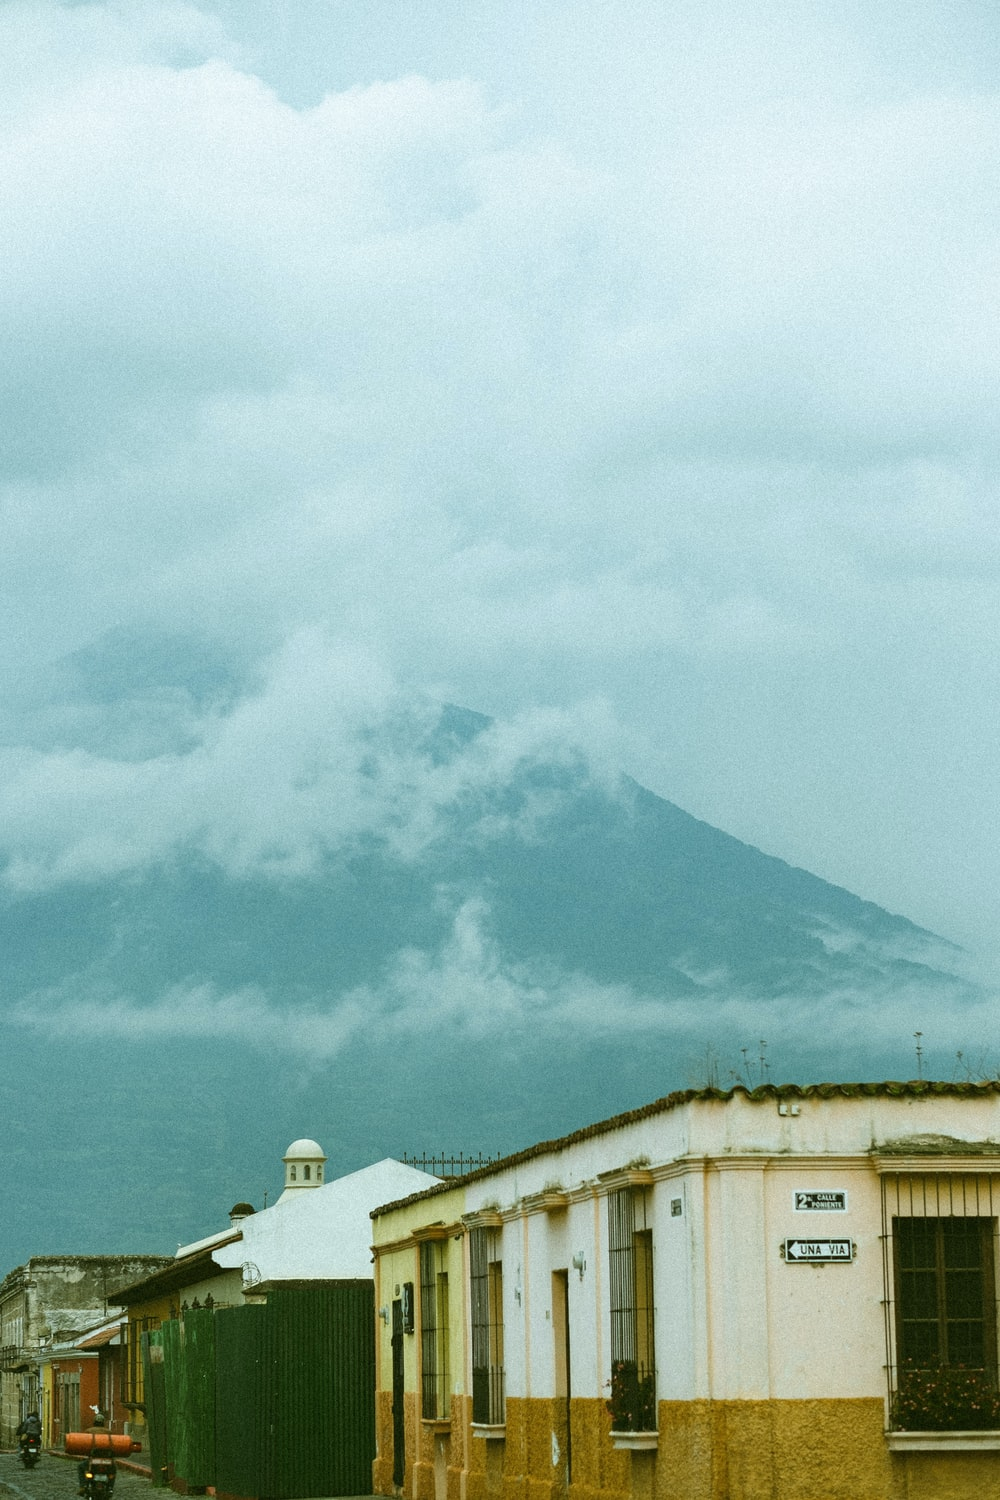 white and black mountain under white clouds during daytime